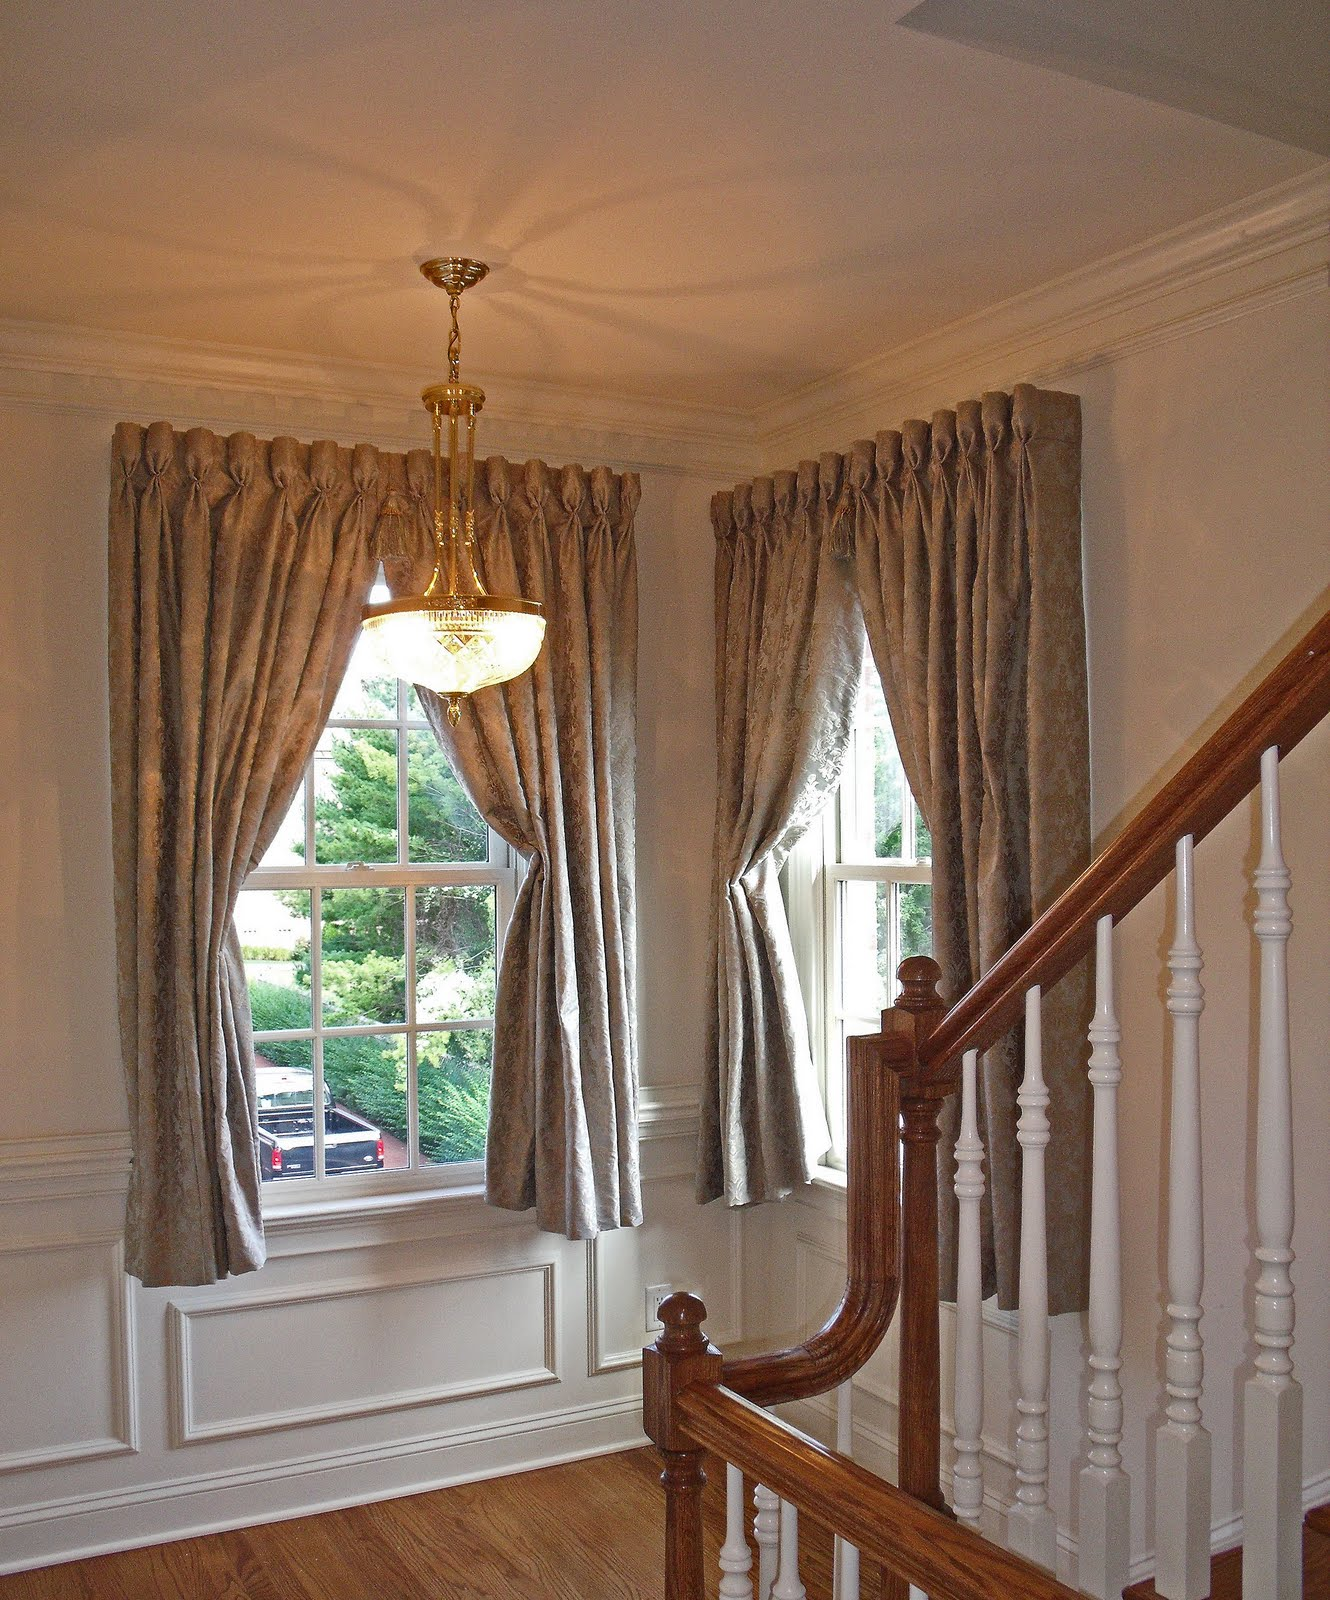 Decorating ideas to window treatments for casement windows High ceiling window treatments